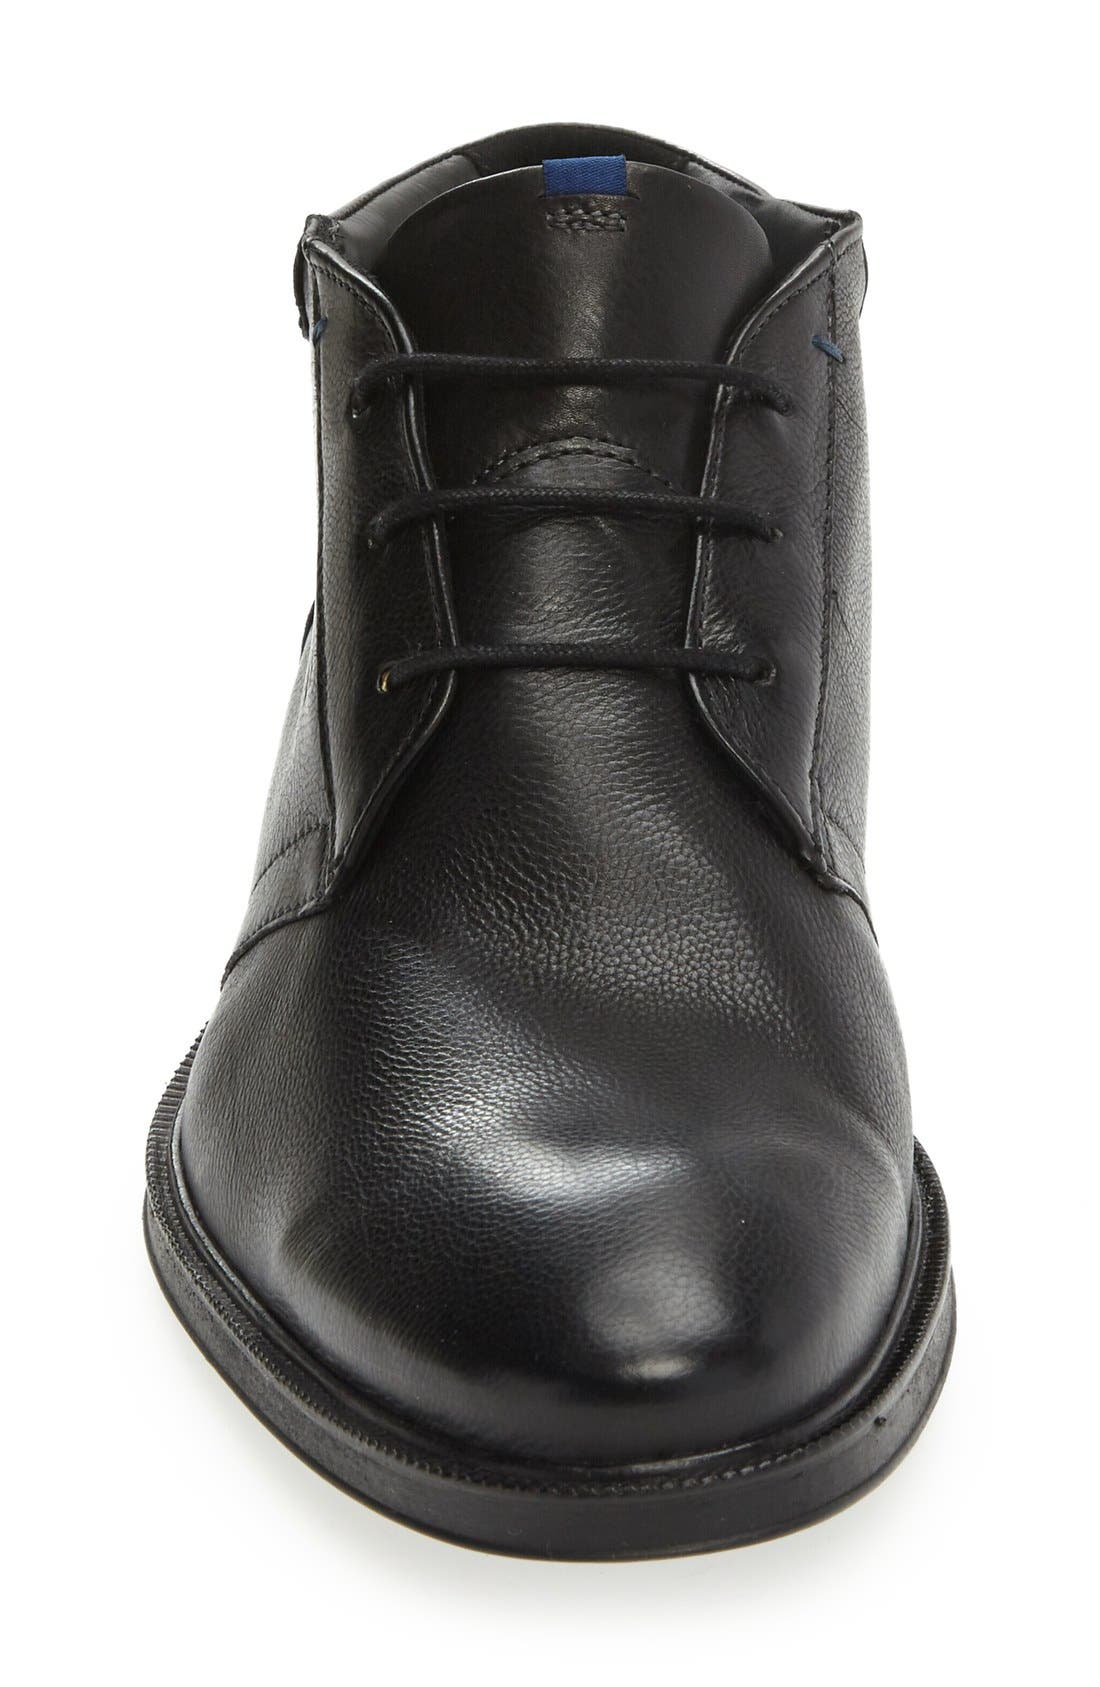 Marik Chukka Boot,                             Alternate thumbnail 3, color,                             Black